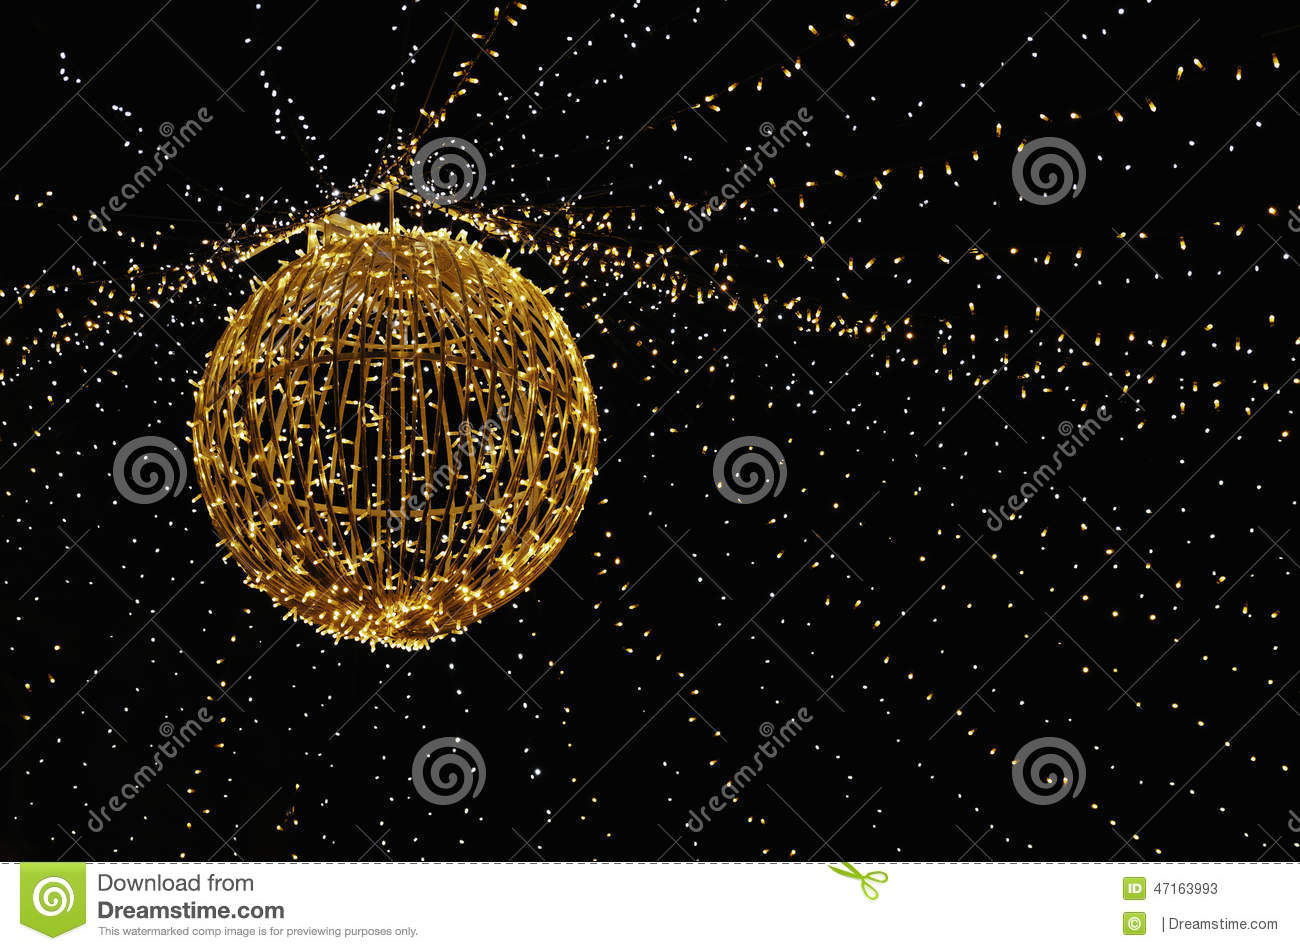 download twinkling christmas lights stock image image of twinkling 47163993